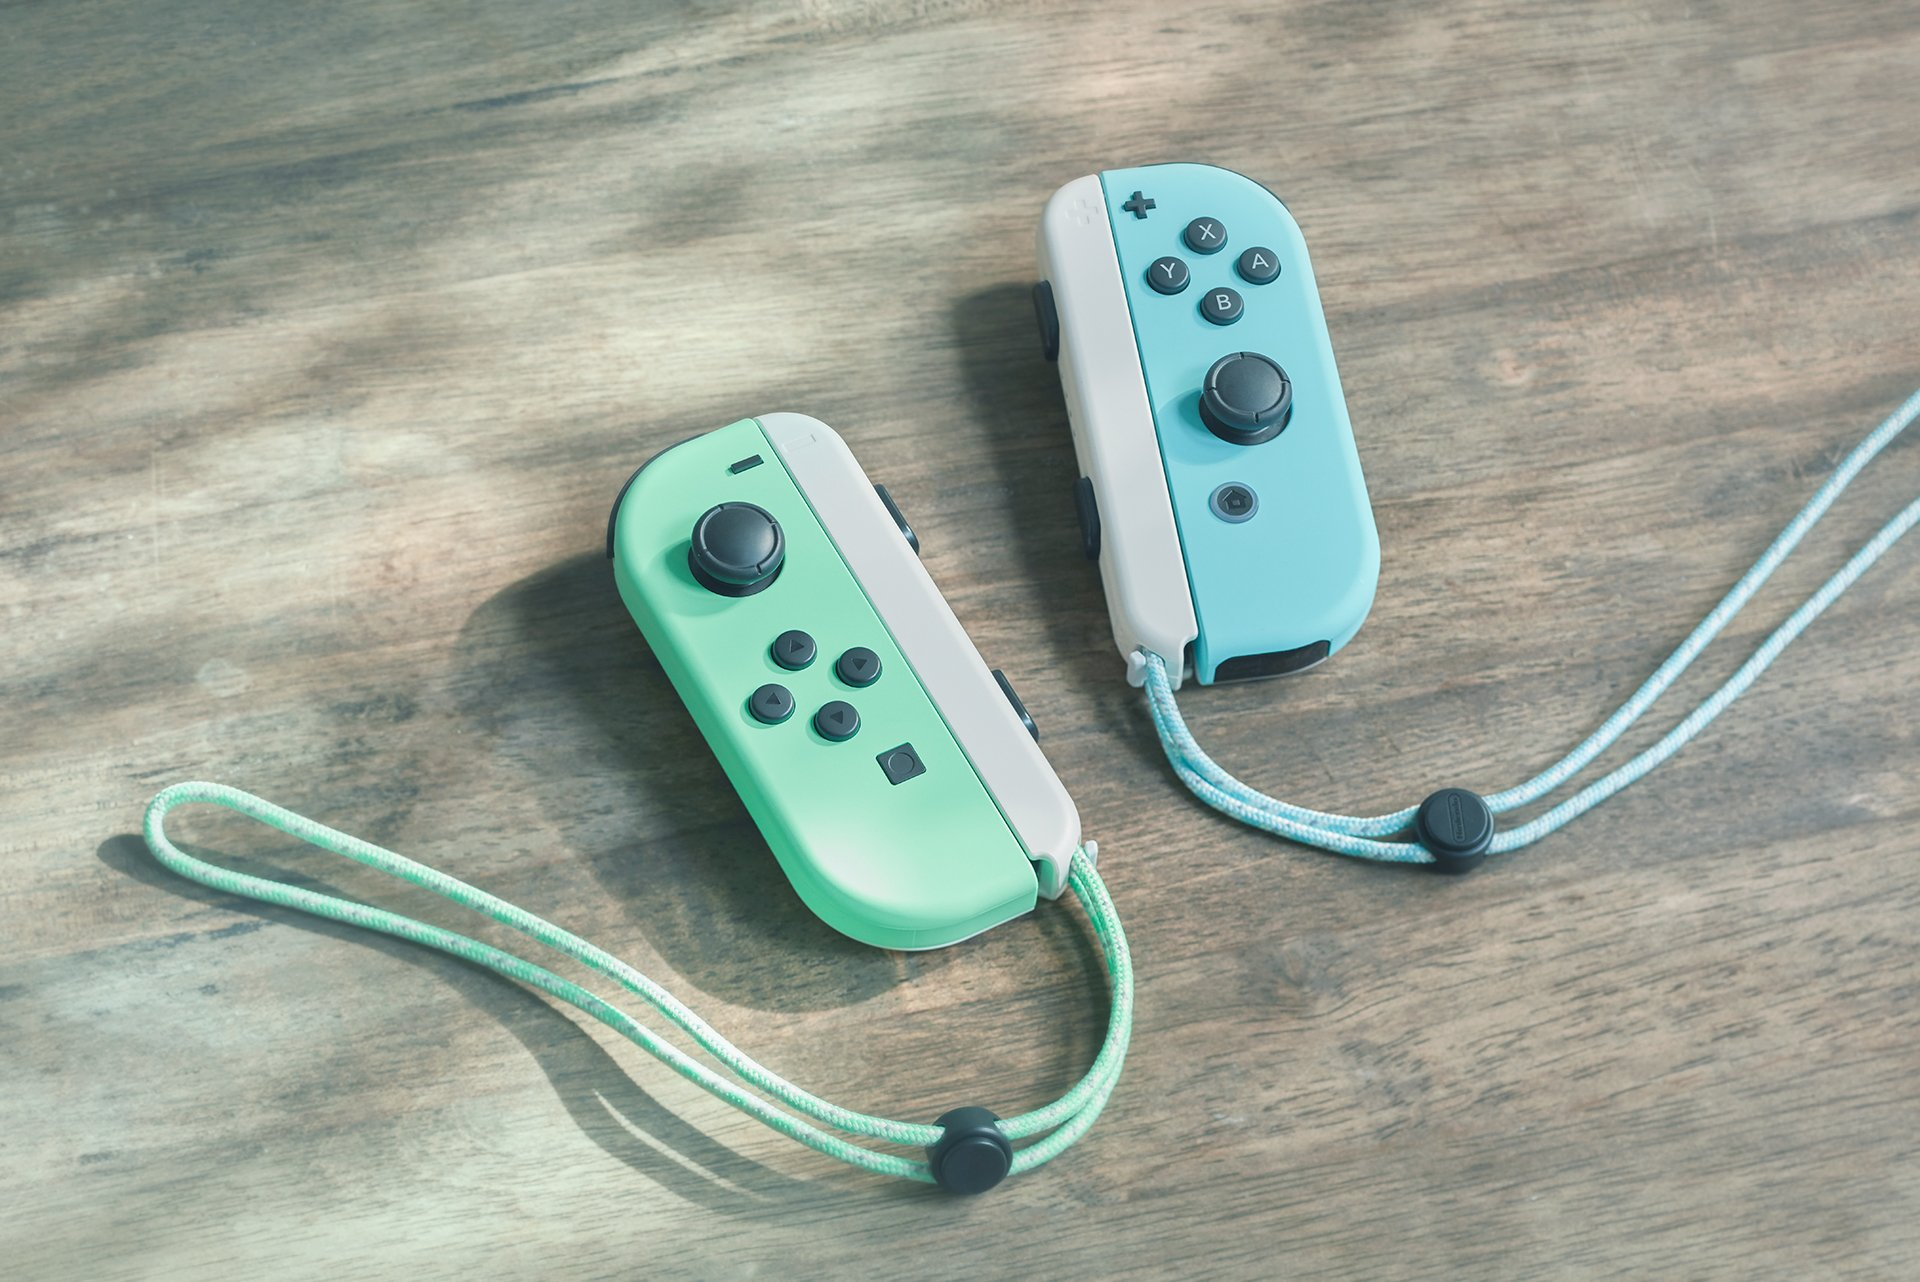 These Joy-Cons are a beautiful paste green and blue pairing.